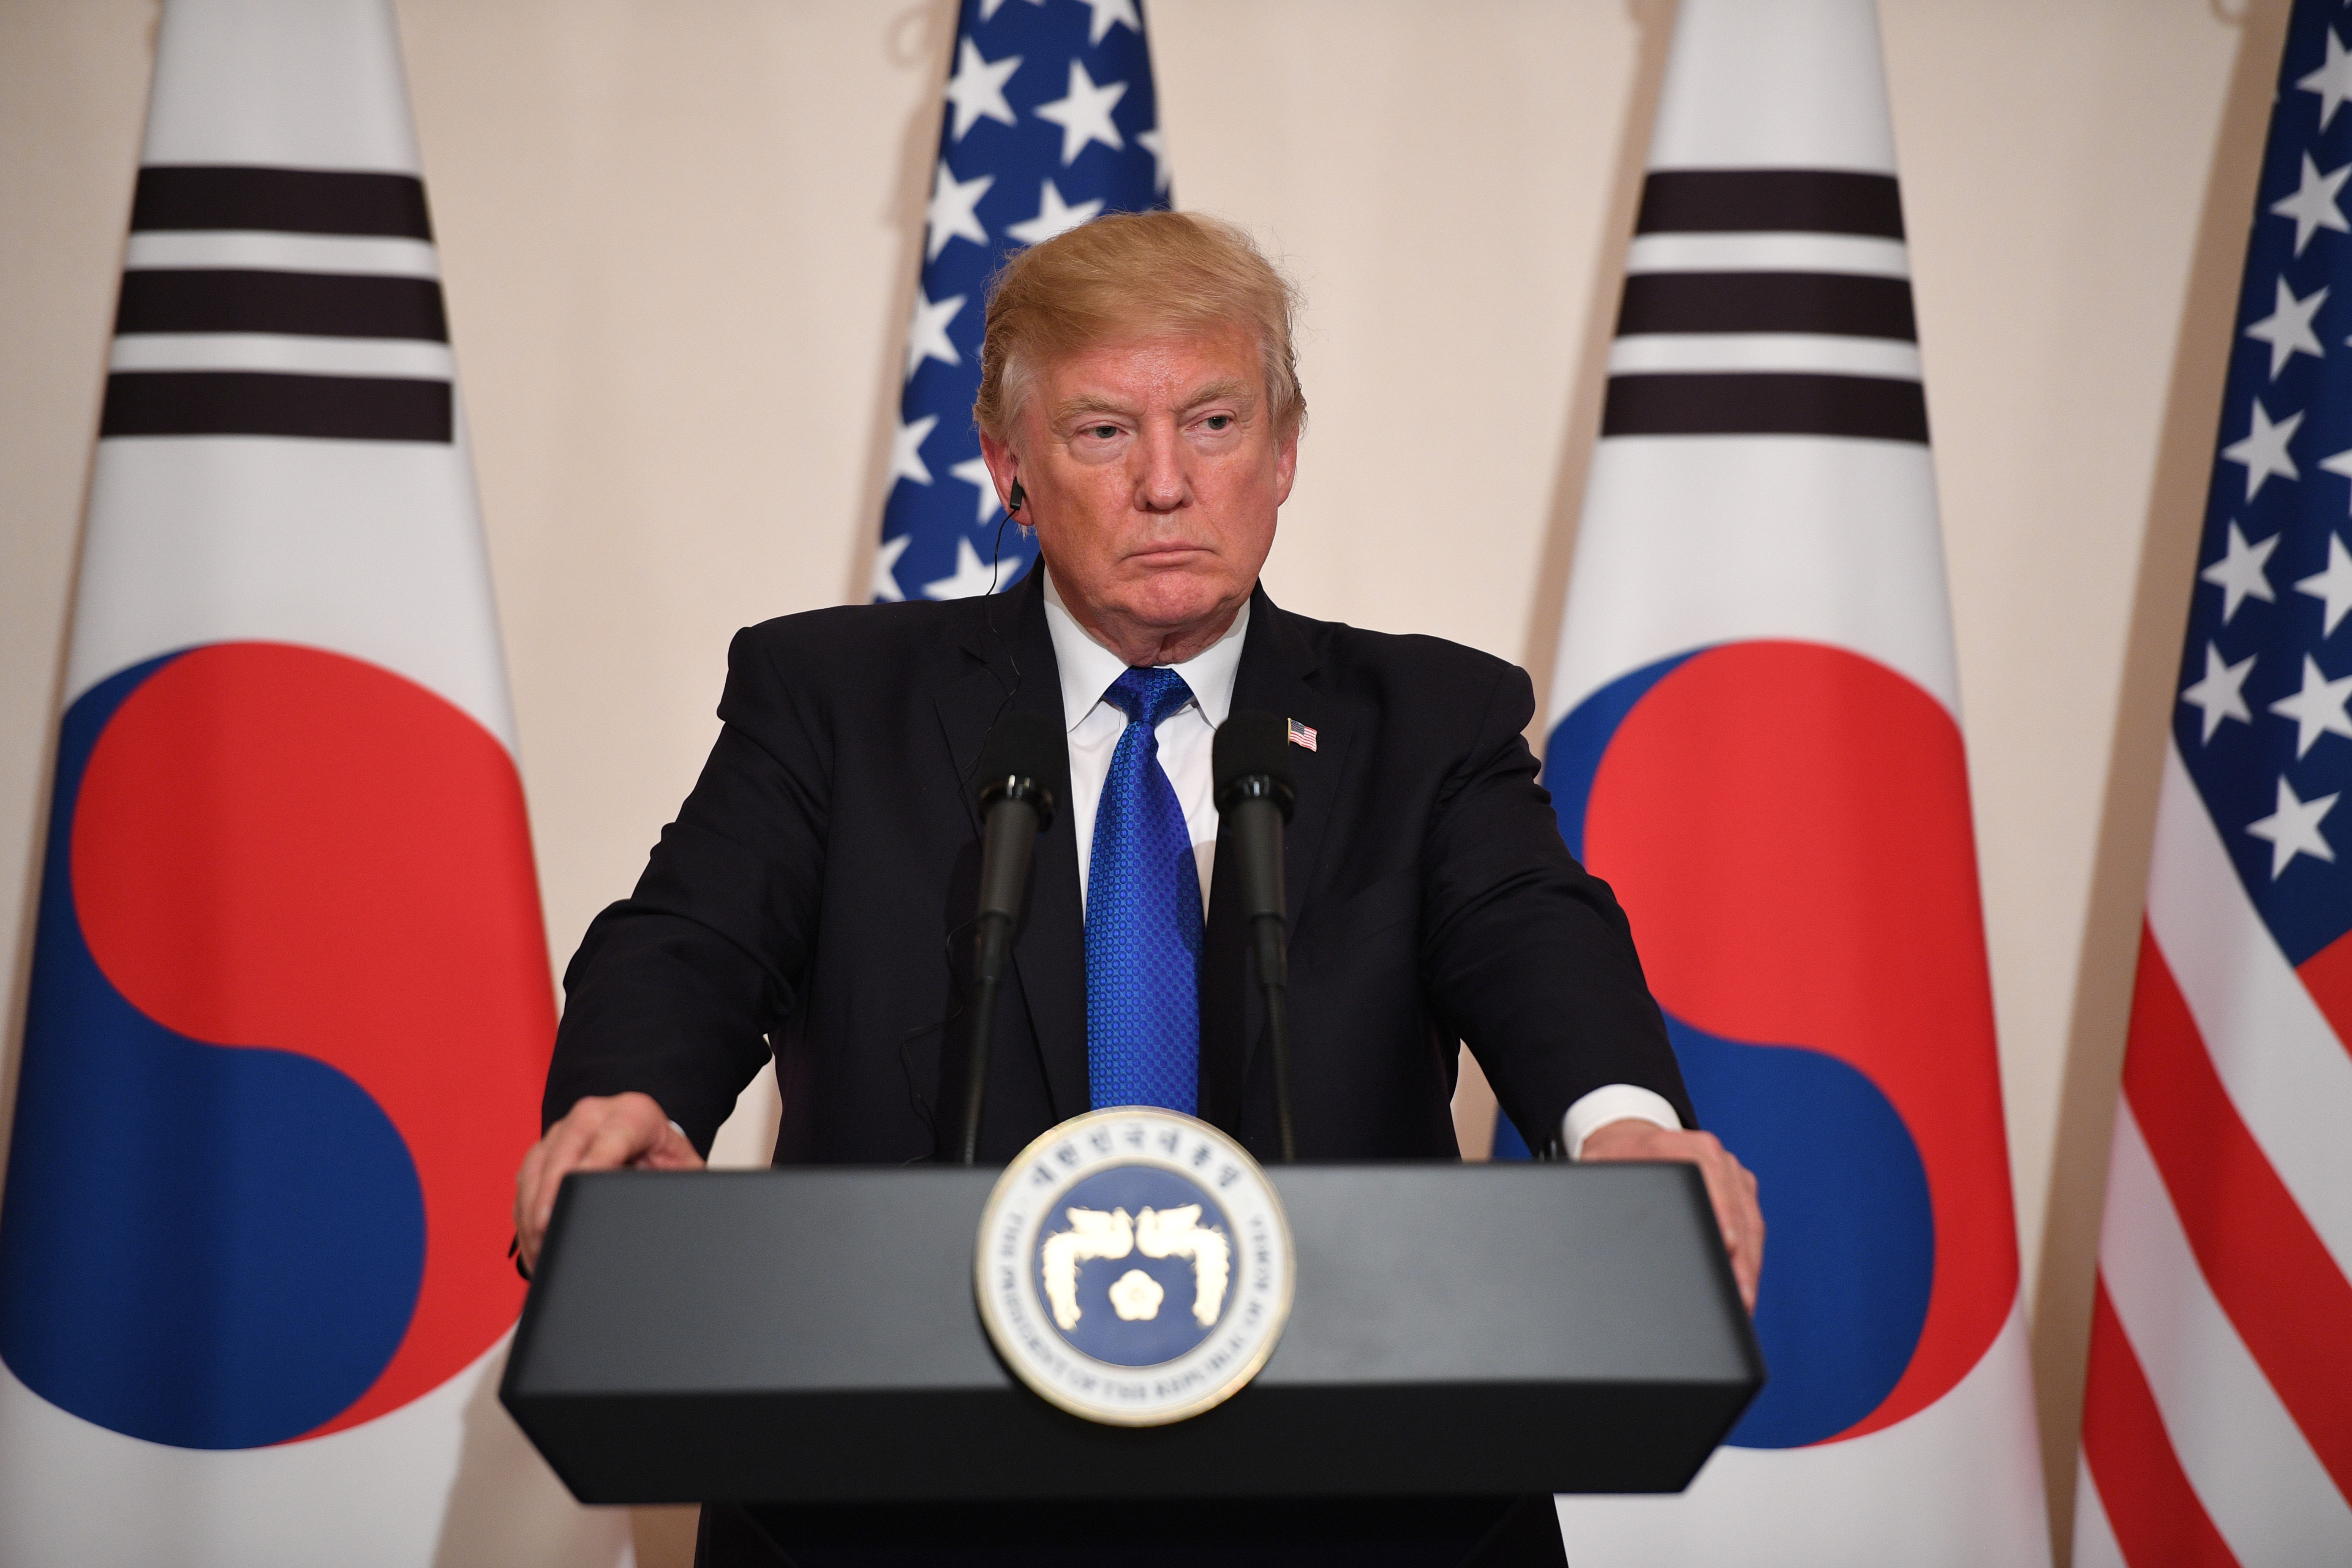 President Donald Trump attends a joint press conference with South Korea's President Moon Jae-In at the presidential Blue House in Seoul on Nov. 7, 2017.